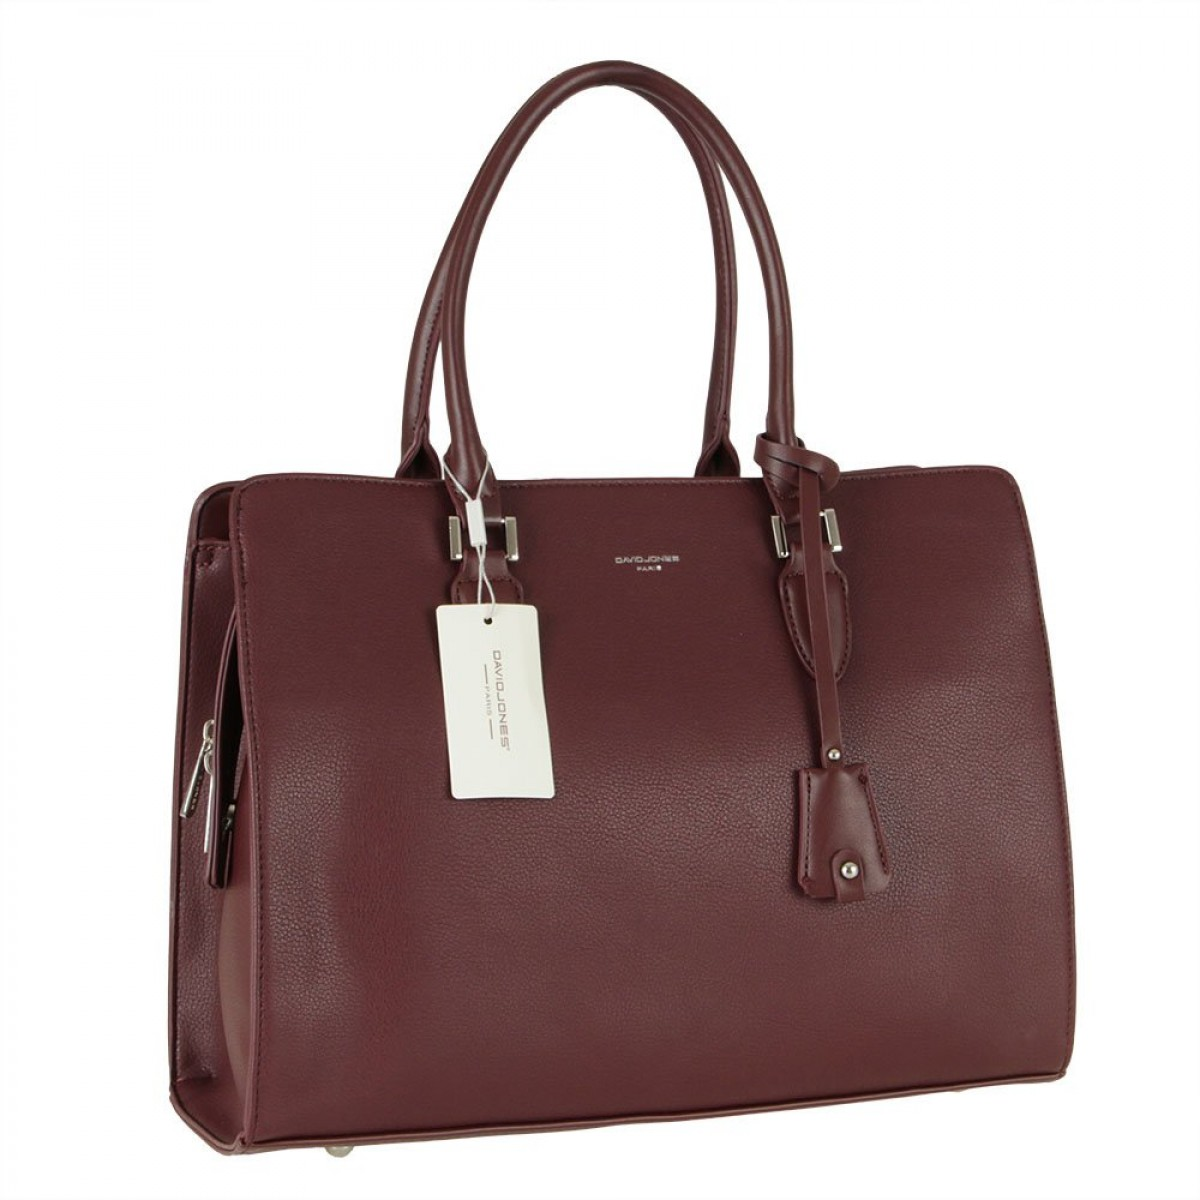 Жіноча сумка David Jones CM5822 DARK BORDEAUX